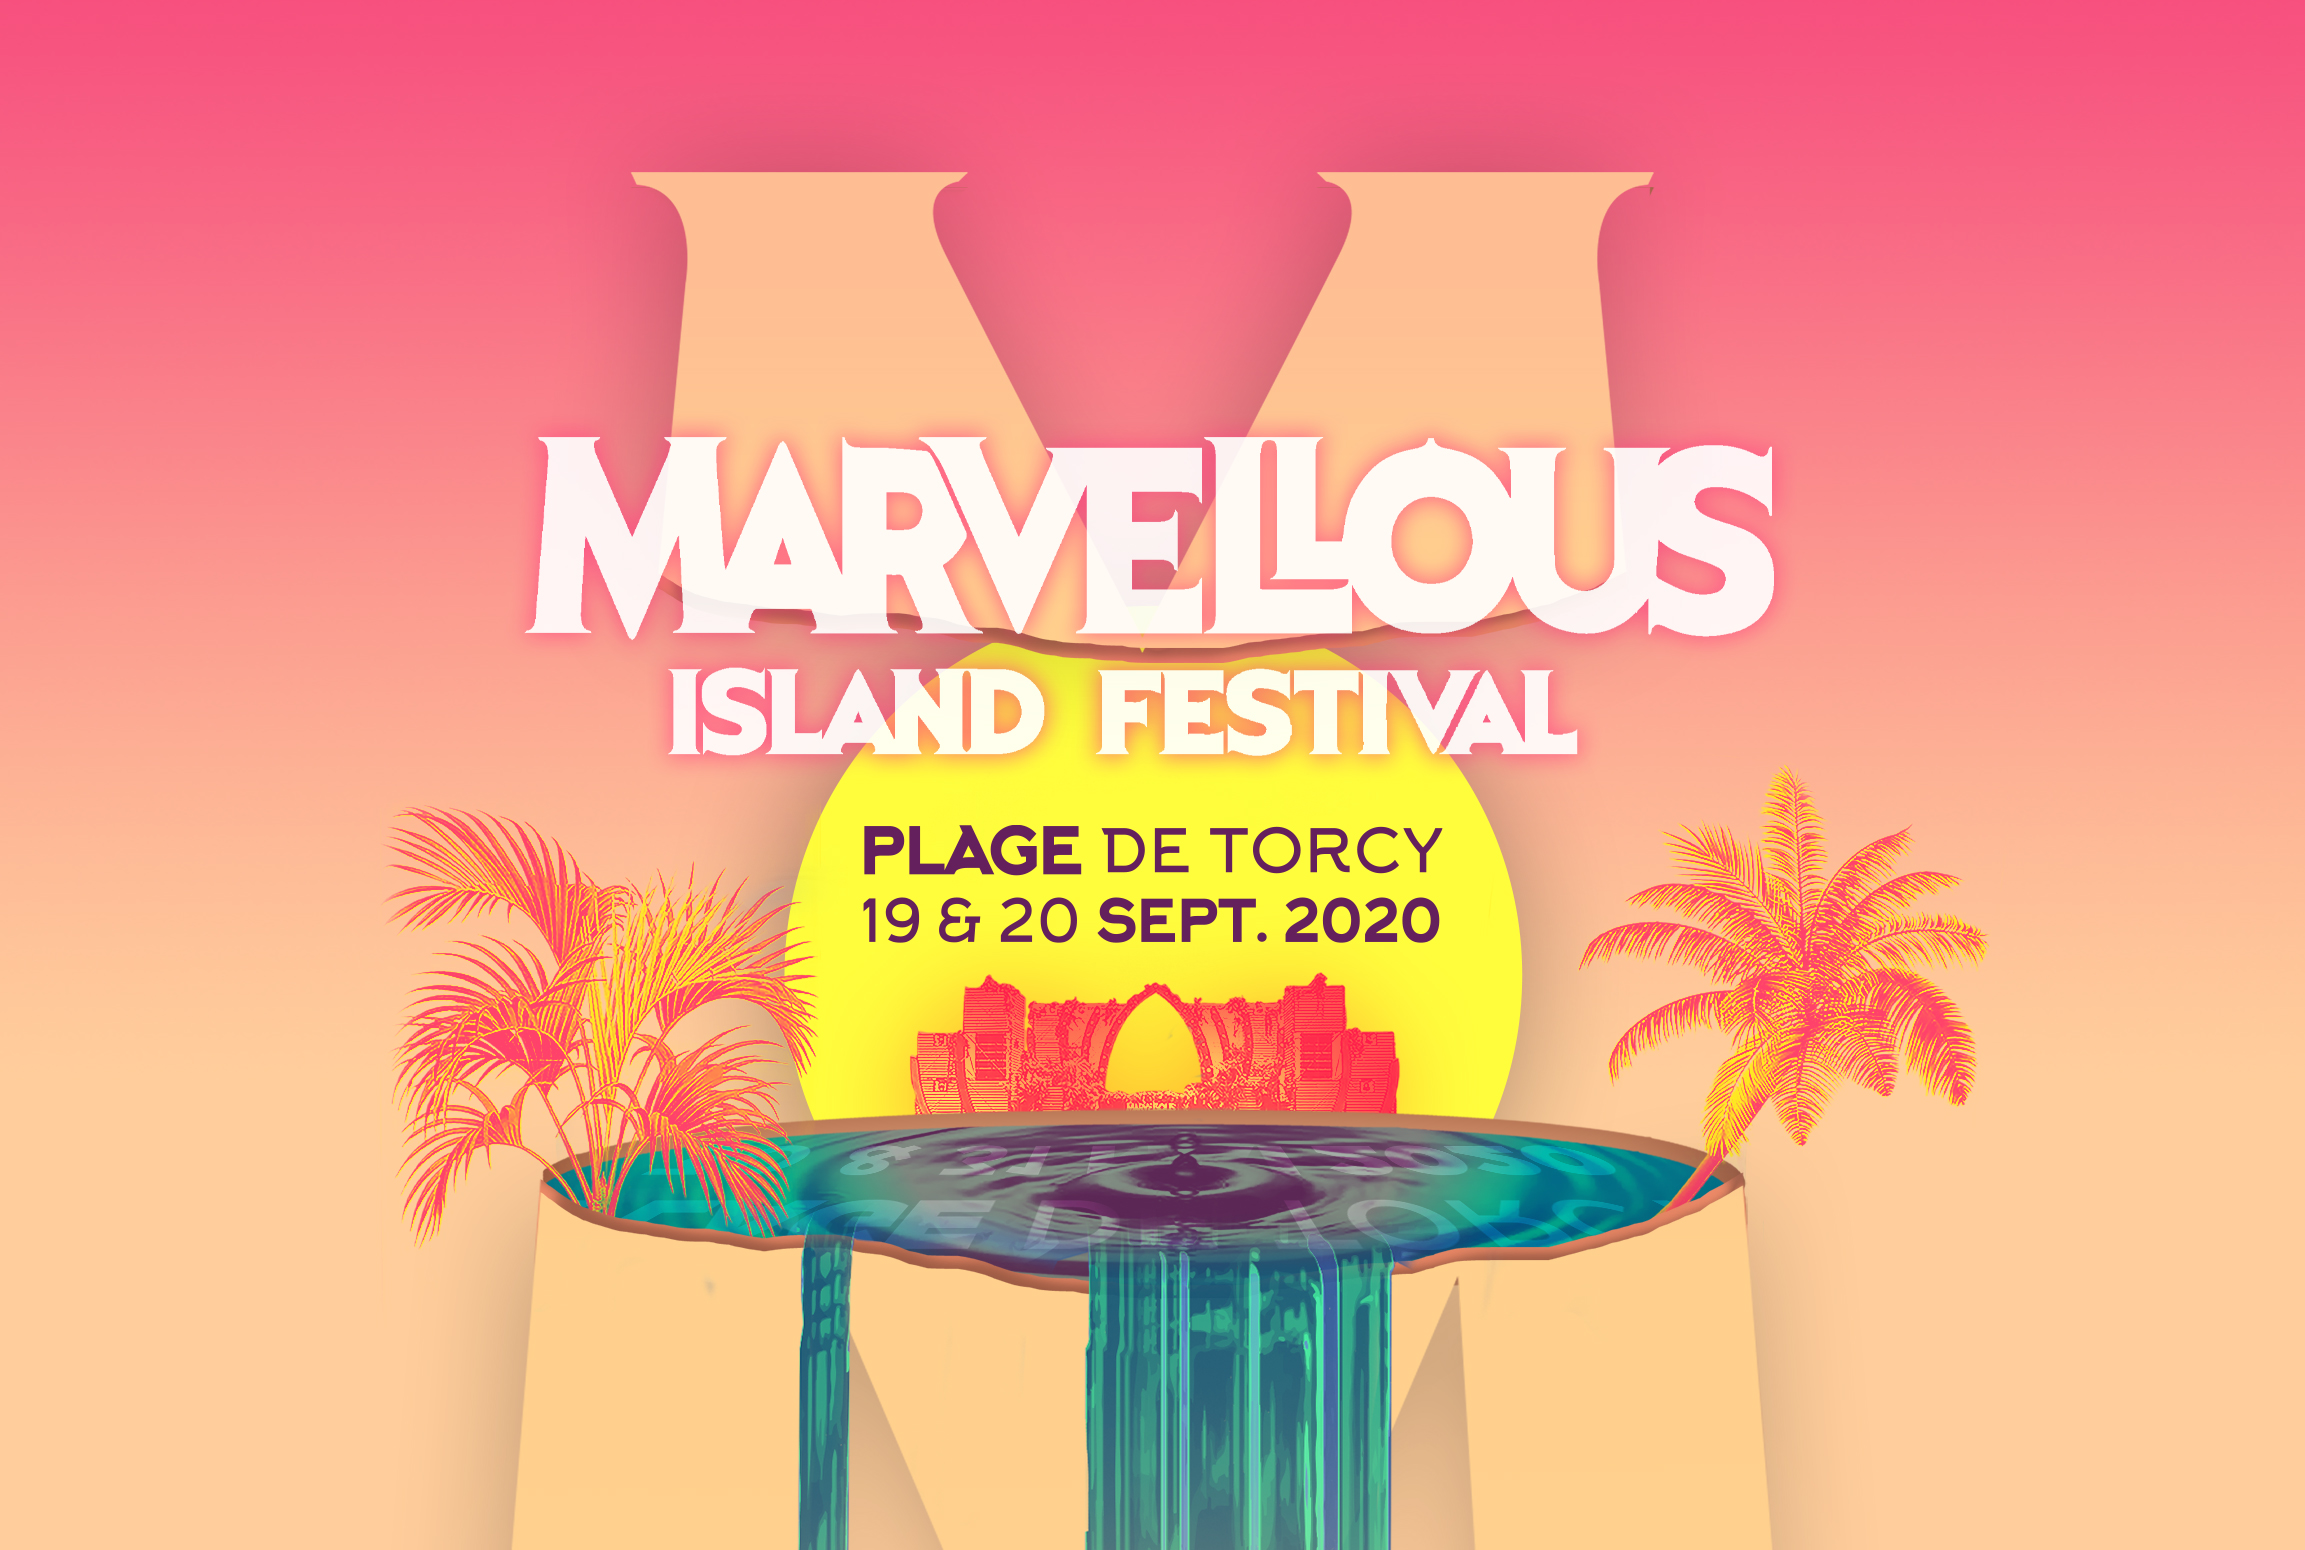 The Marvellous Island Festival 2020 is postponed -Clubbingtv.com